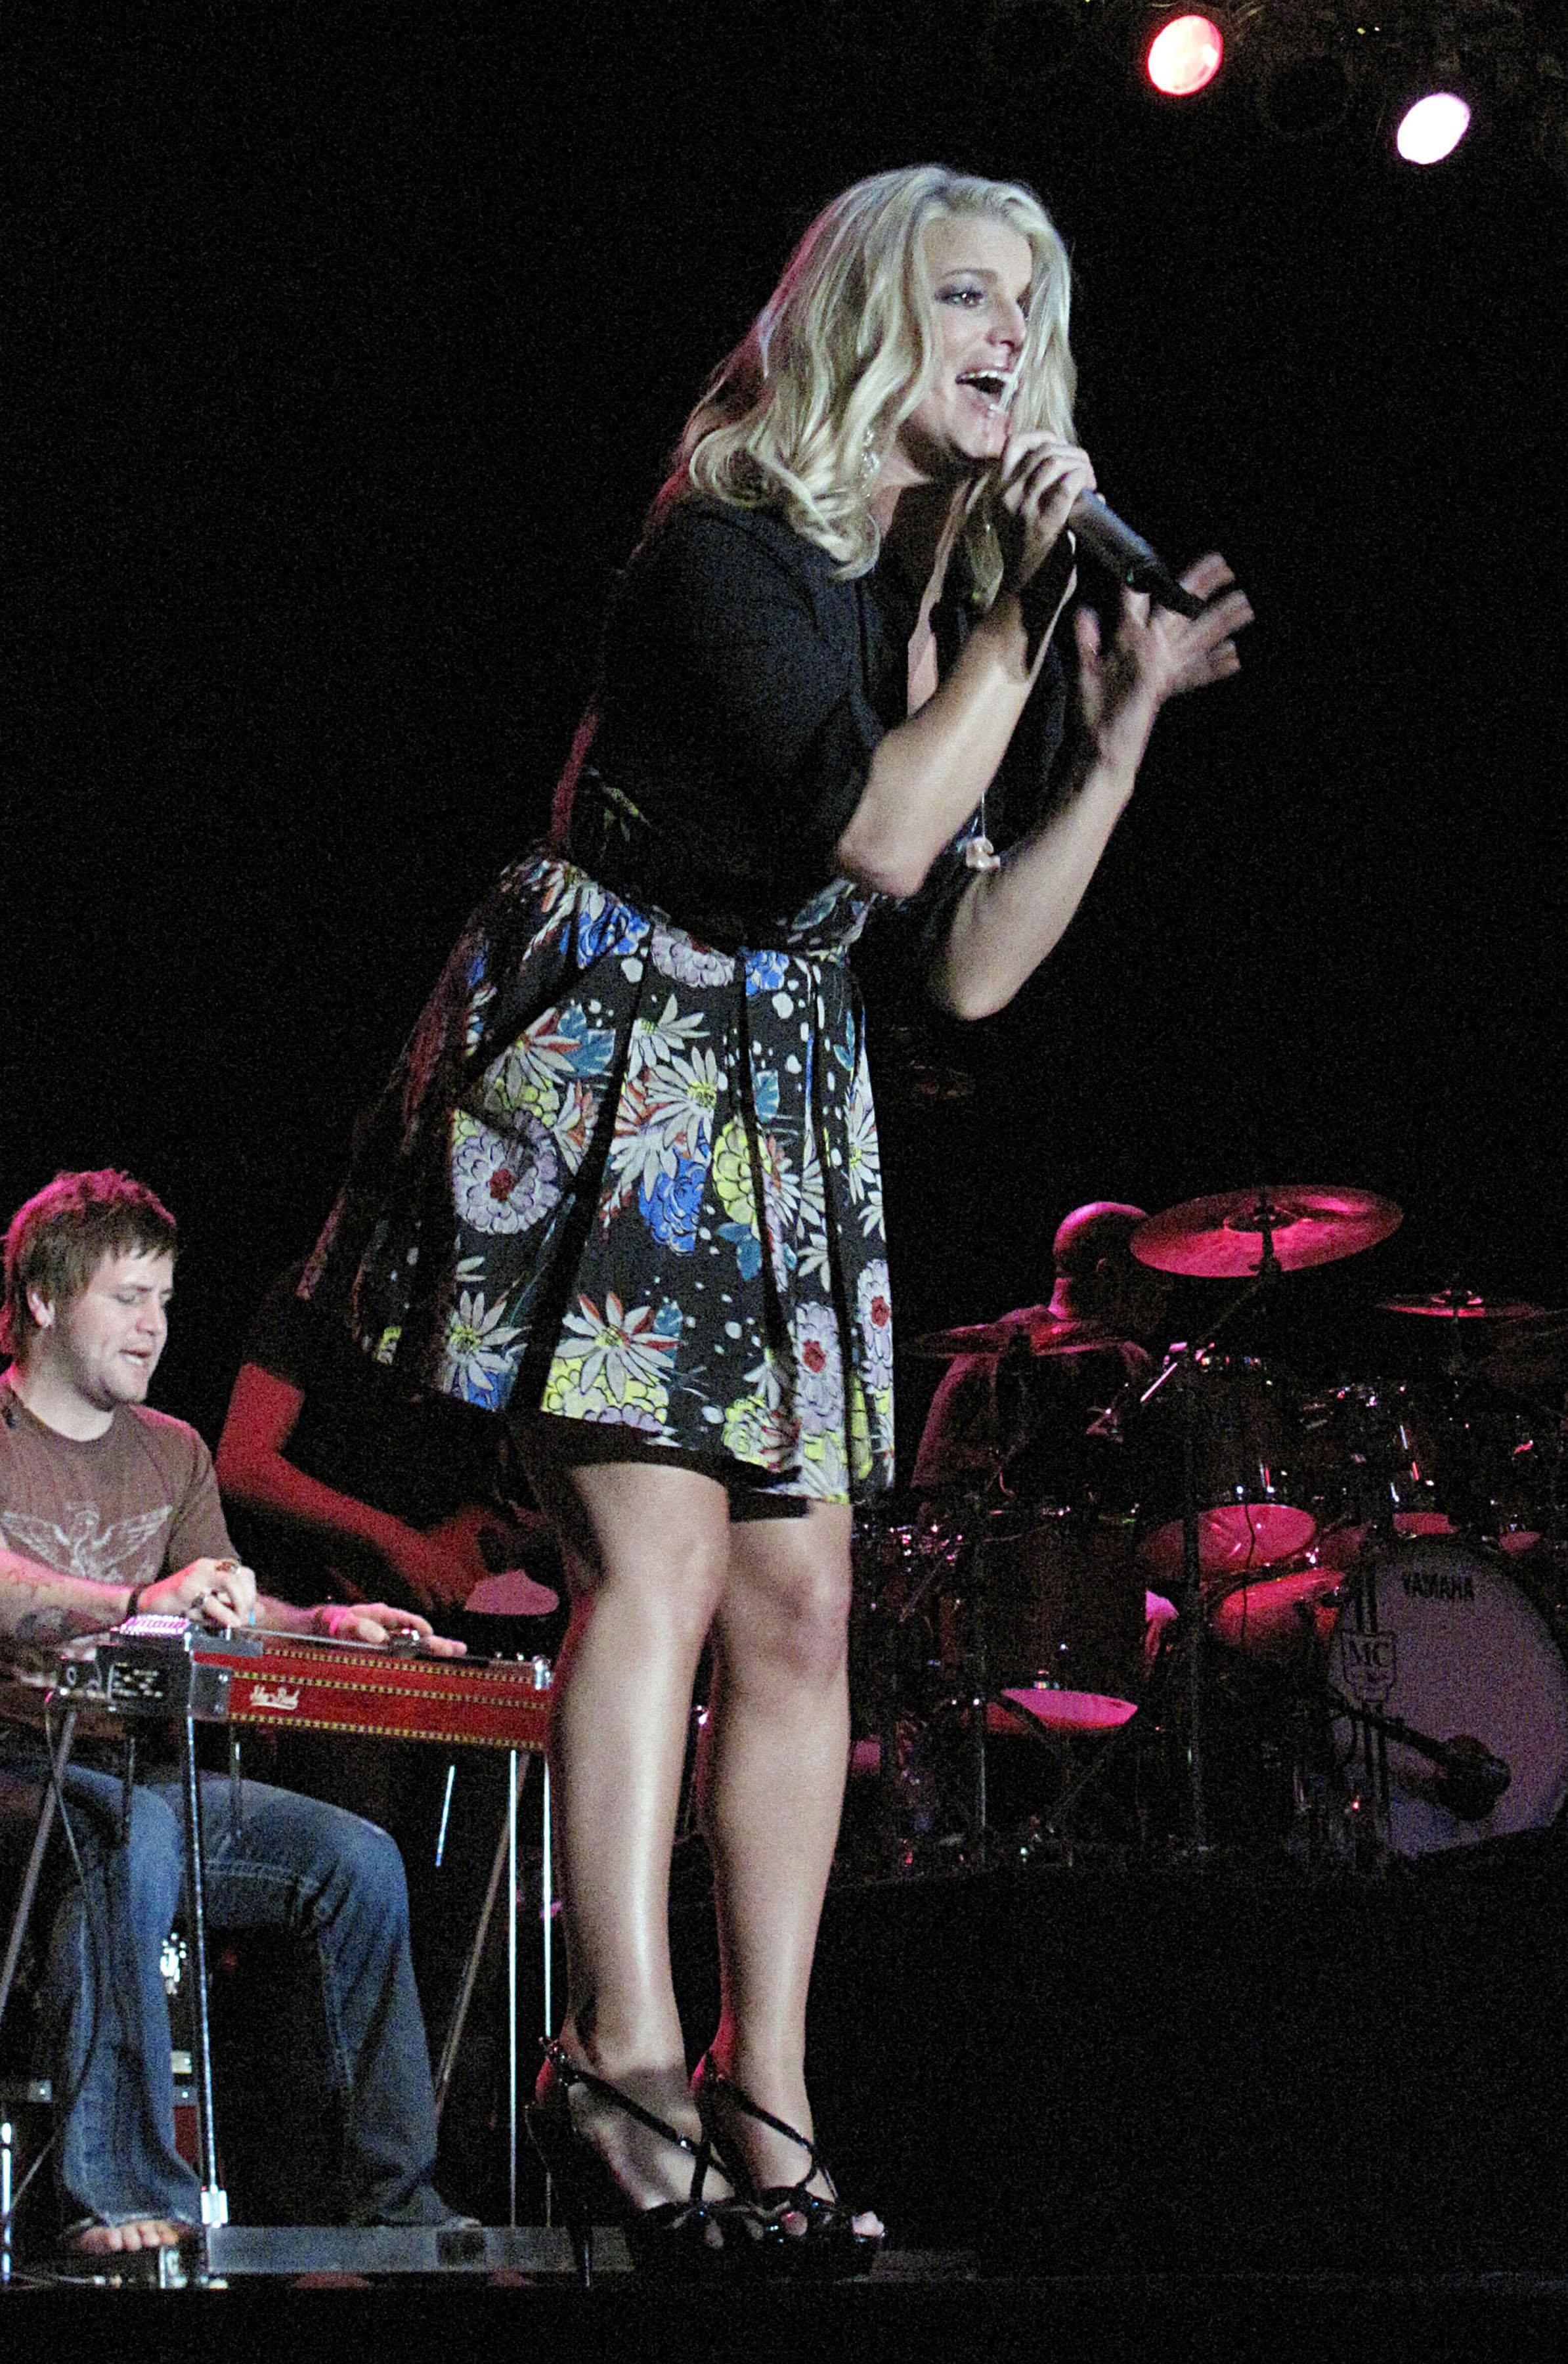 72349_Jessica_Simpson_performs_live_at_the_Dixon_May_Fair_and_Carnival_987_122_157lo.jpg